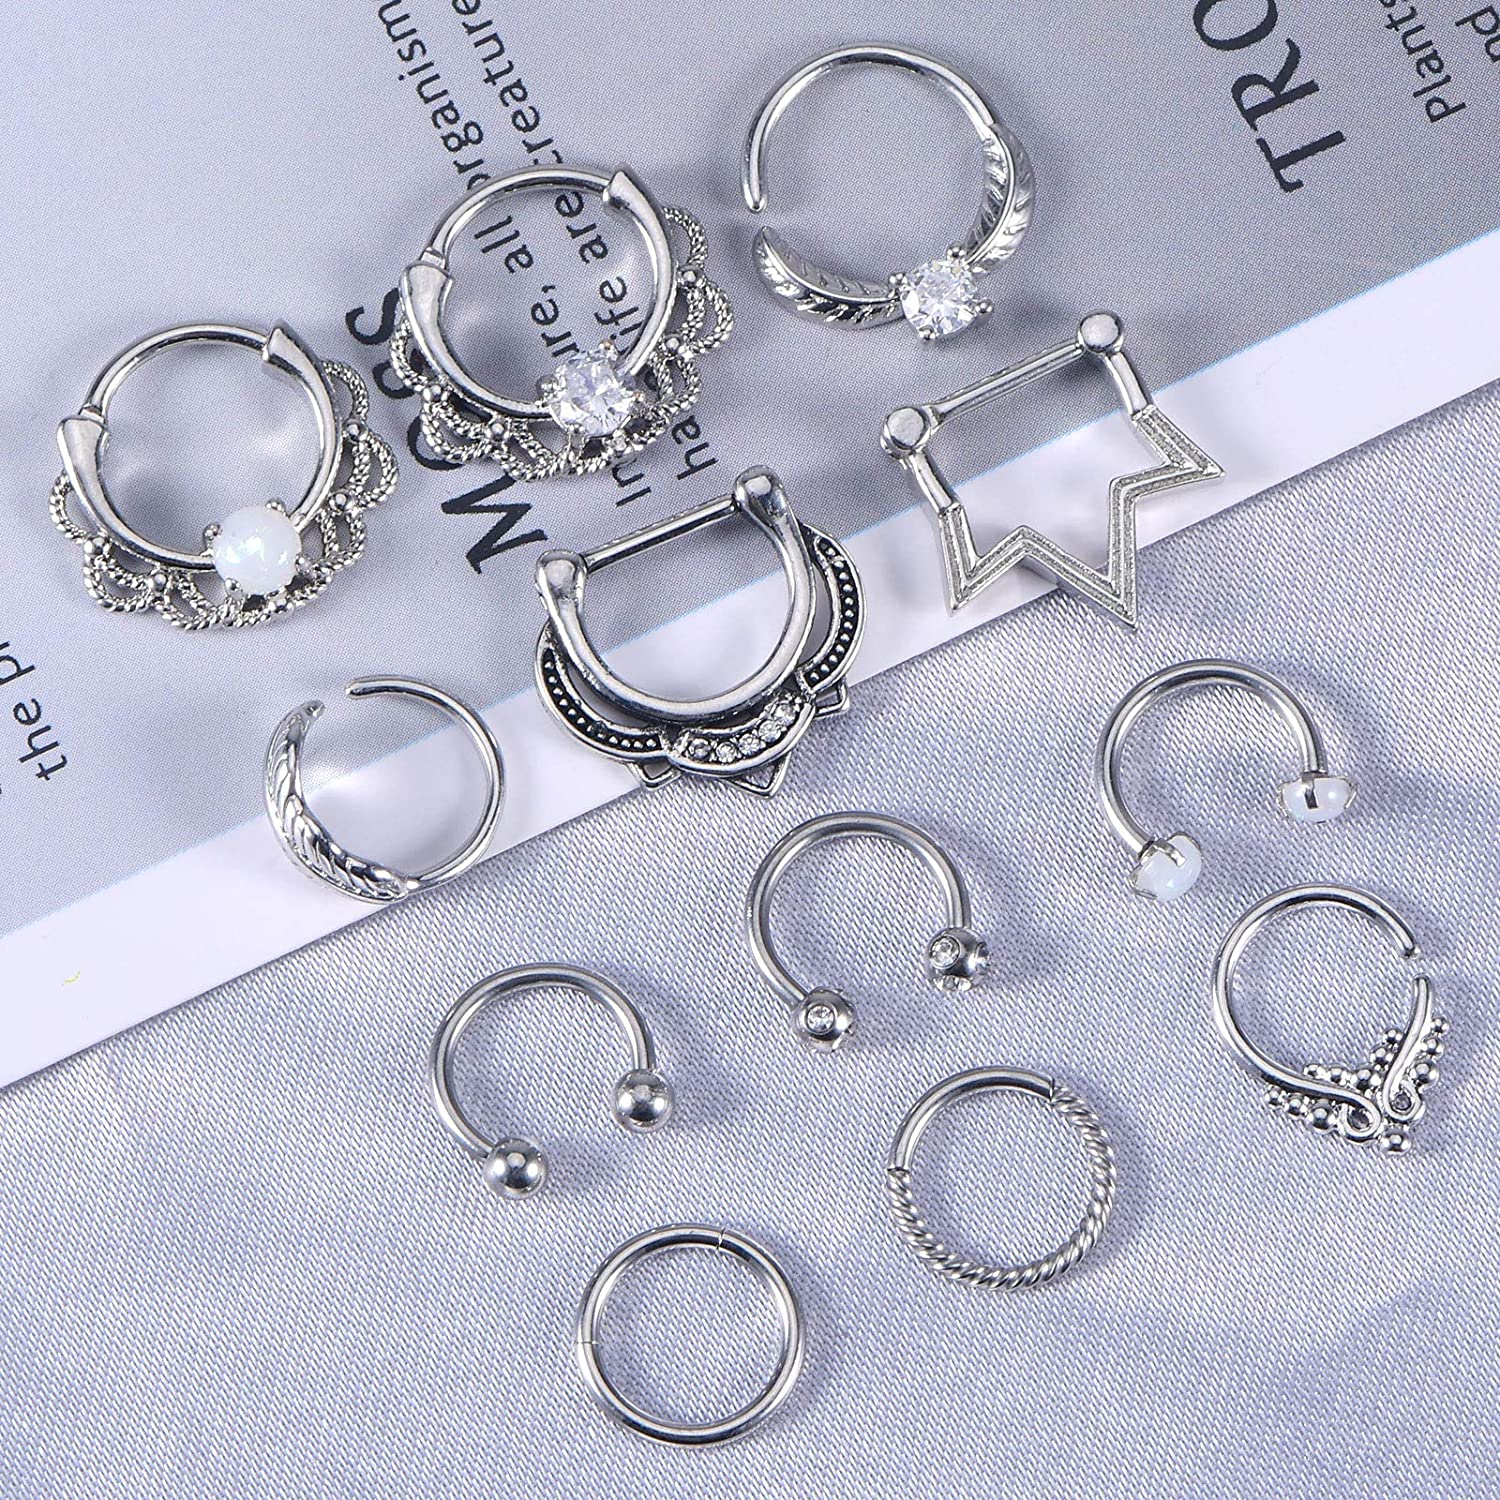 Anicina Septum Jewelry Hinged Segment Clicker Tragus Septum Clicker Ring Stainless Steel Septum Ring Piercing Horseshoe Cartilage Helix Daith Earring Hoop